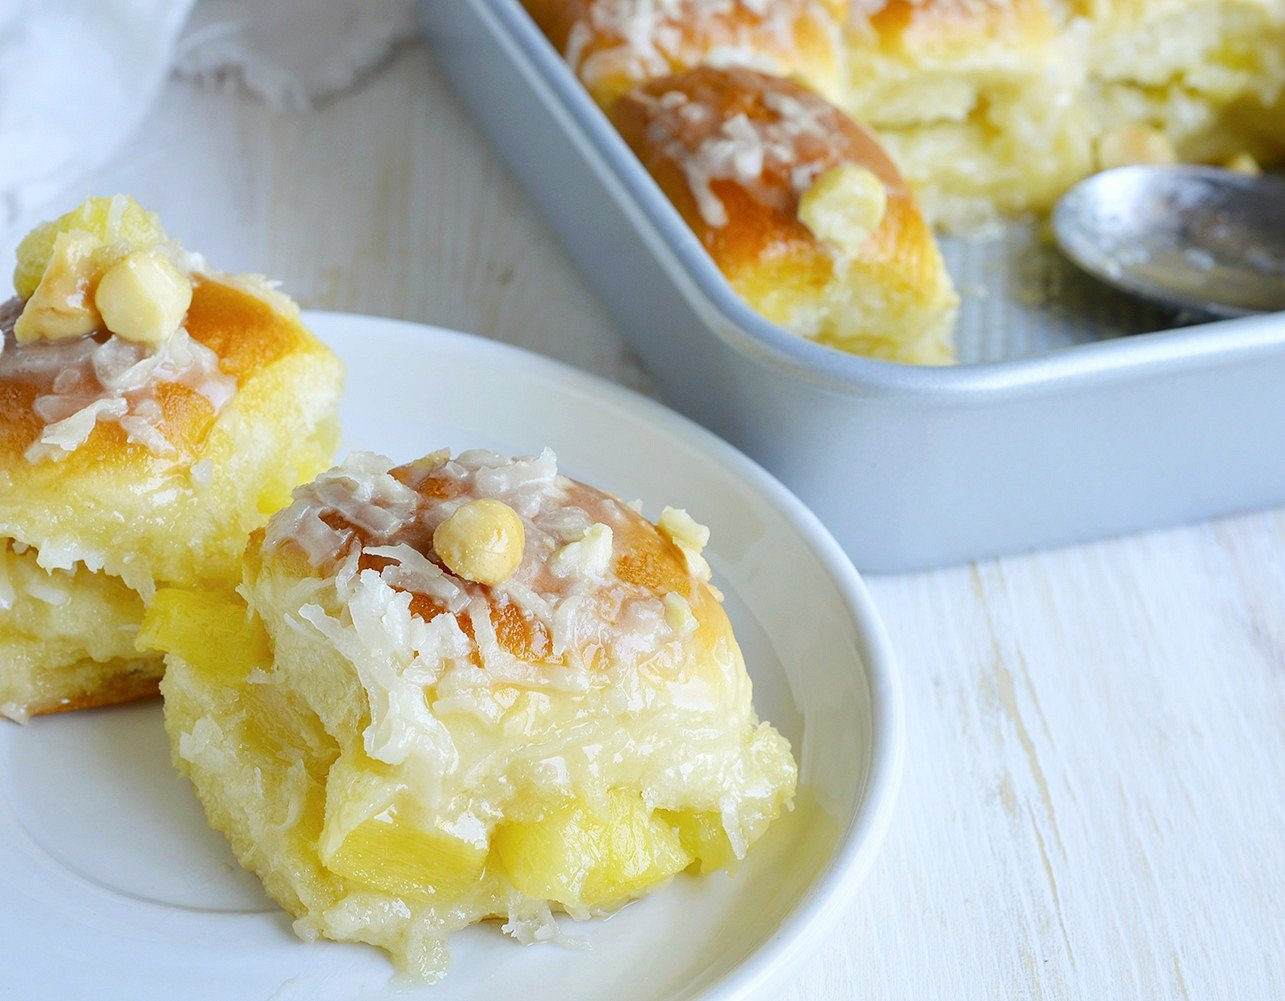 Easy Dessert Recipes With Few Ingredients Quick